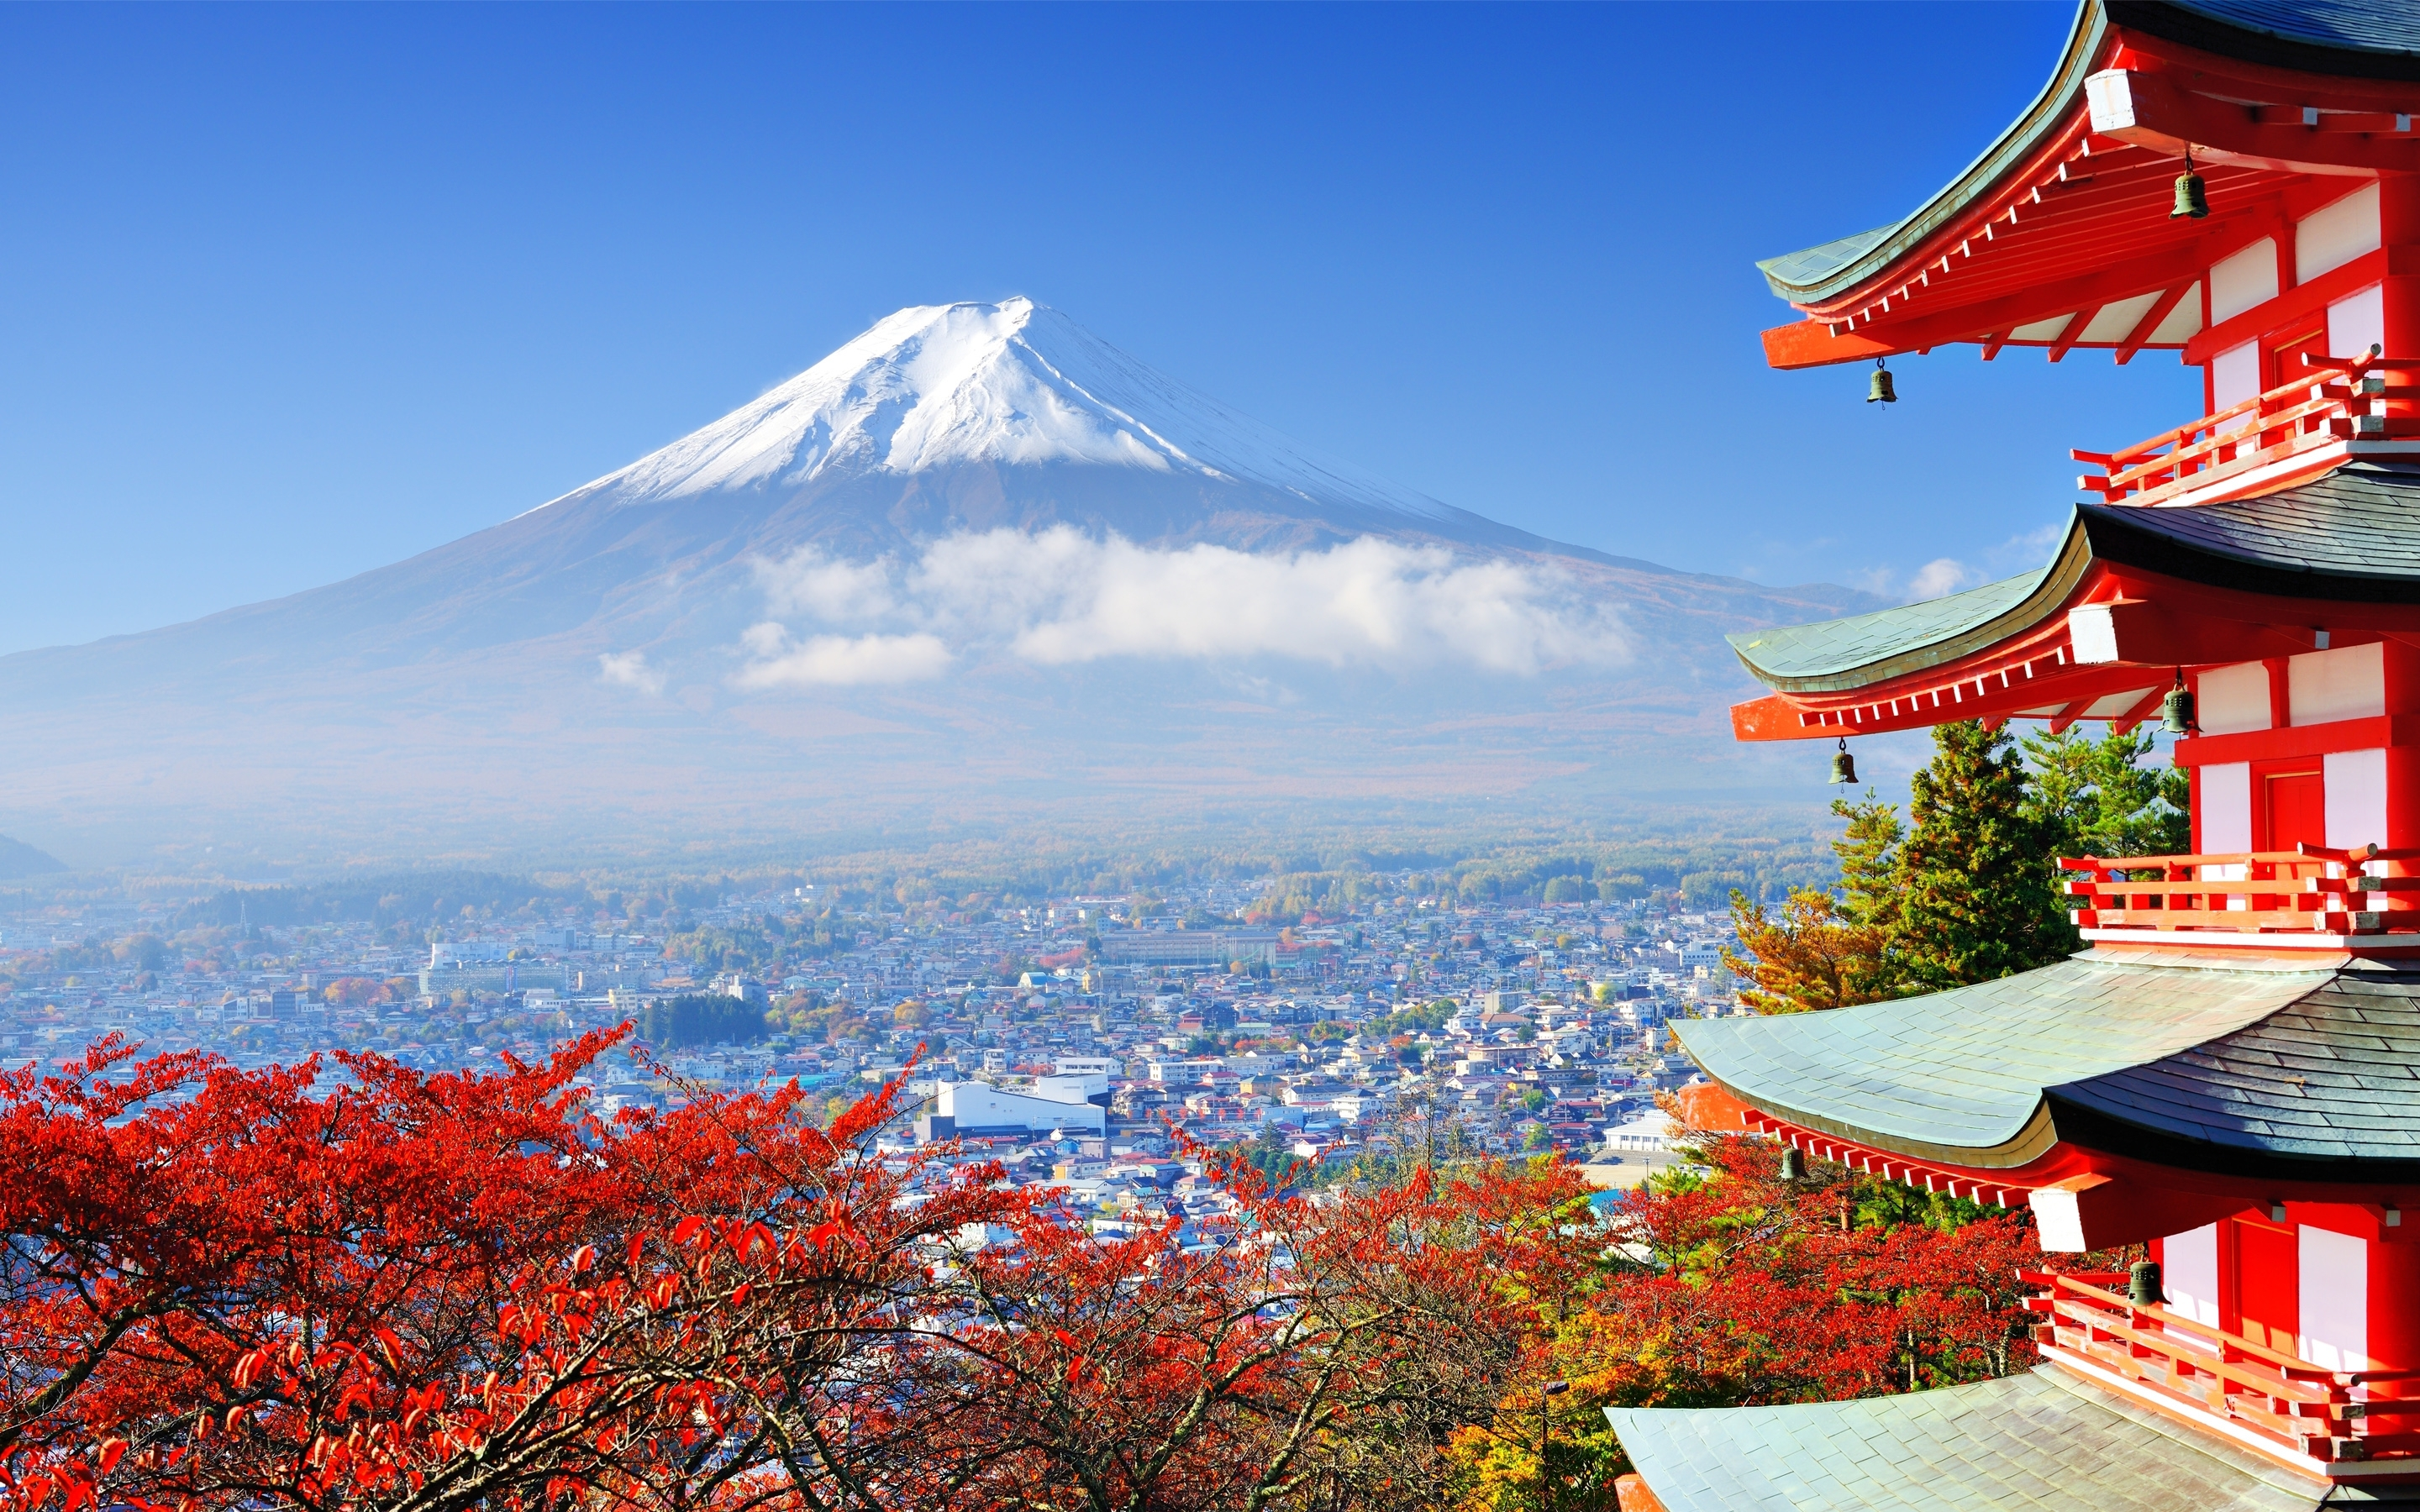 mount fuji japan highest mountain wallpapers | hd wallpapers | id #16711